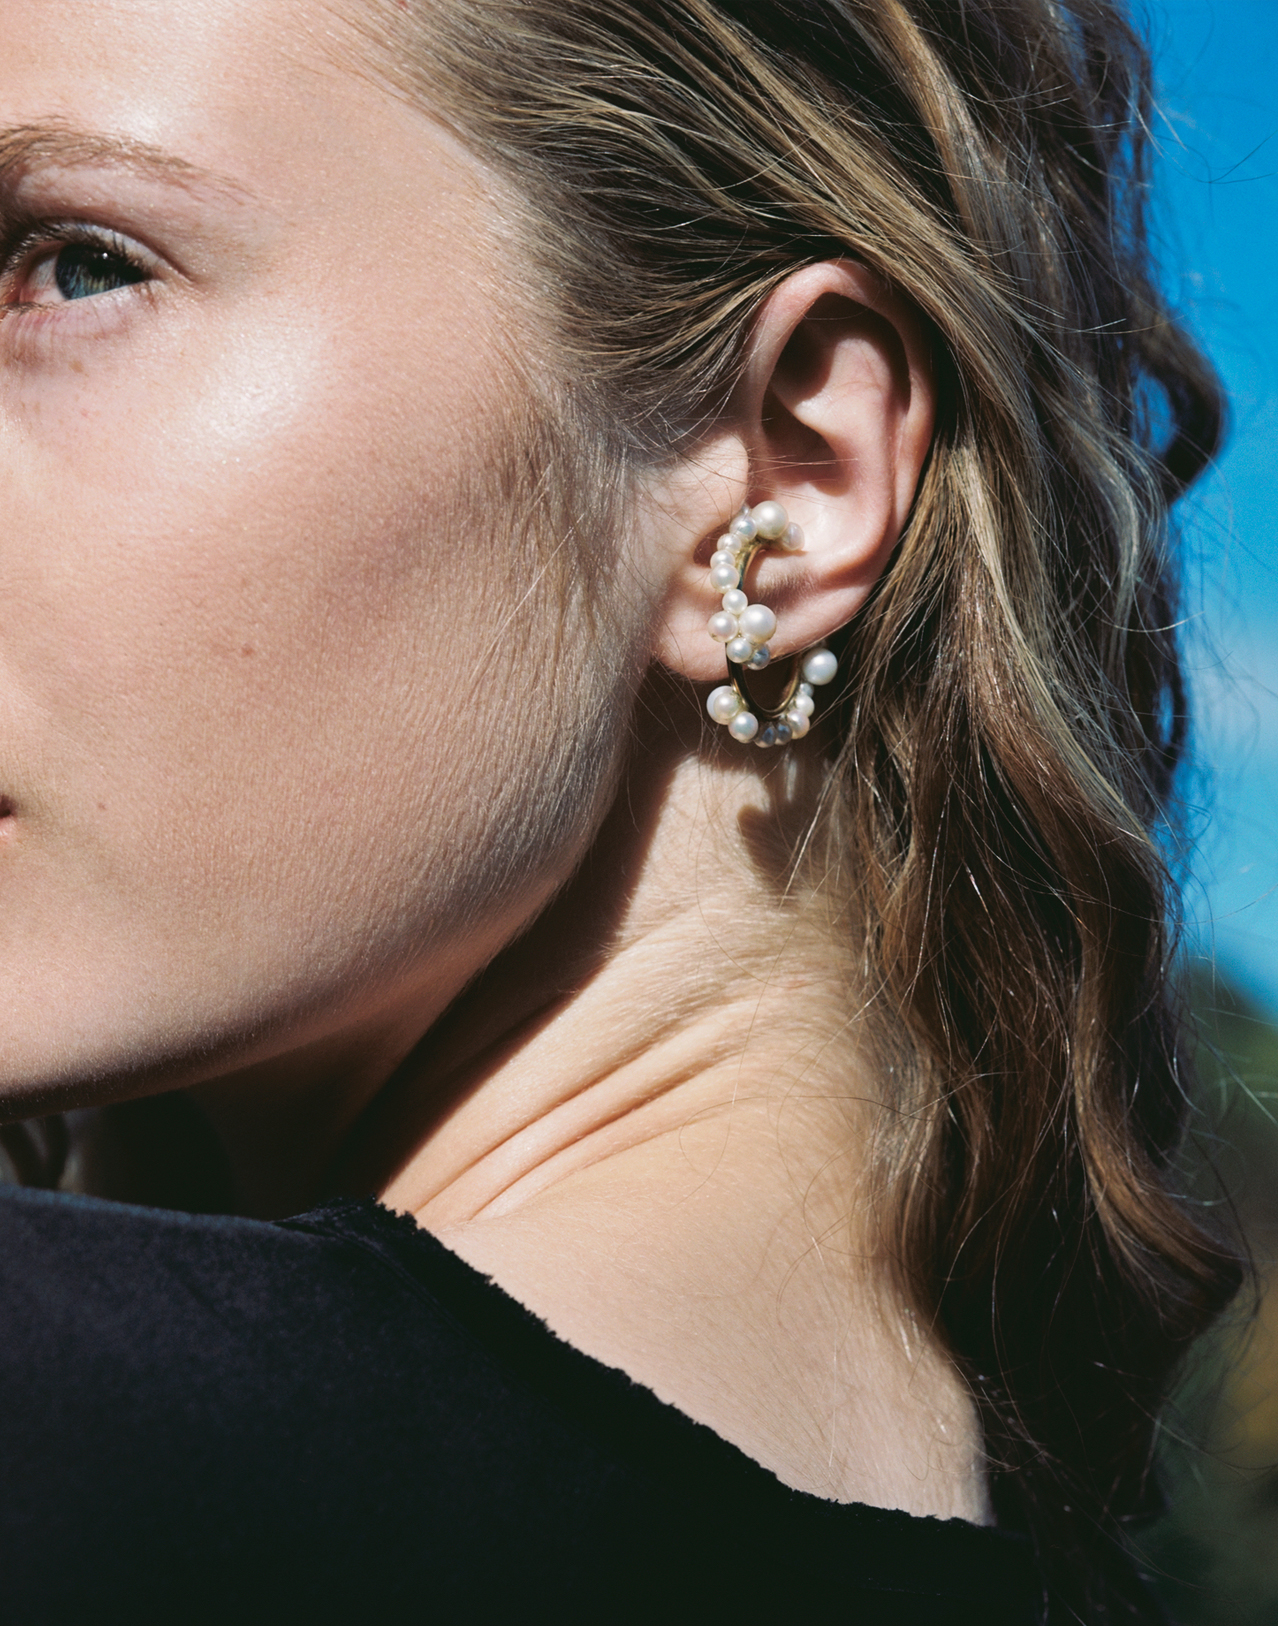 Completedworks-Tied-18ct-Yellow-Gold-plating-on-Silver-Ear-Cuff-A1019-11.jpg